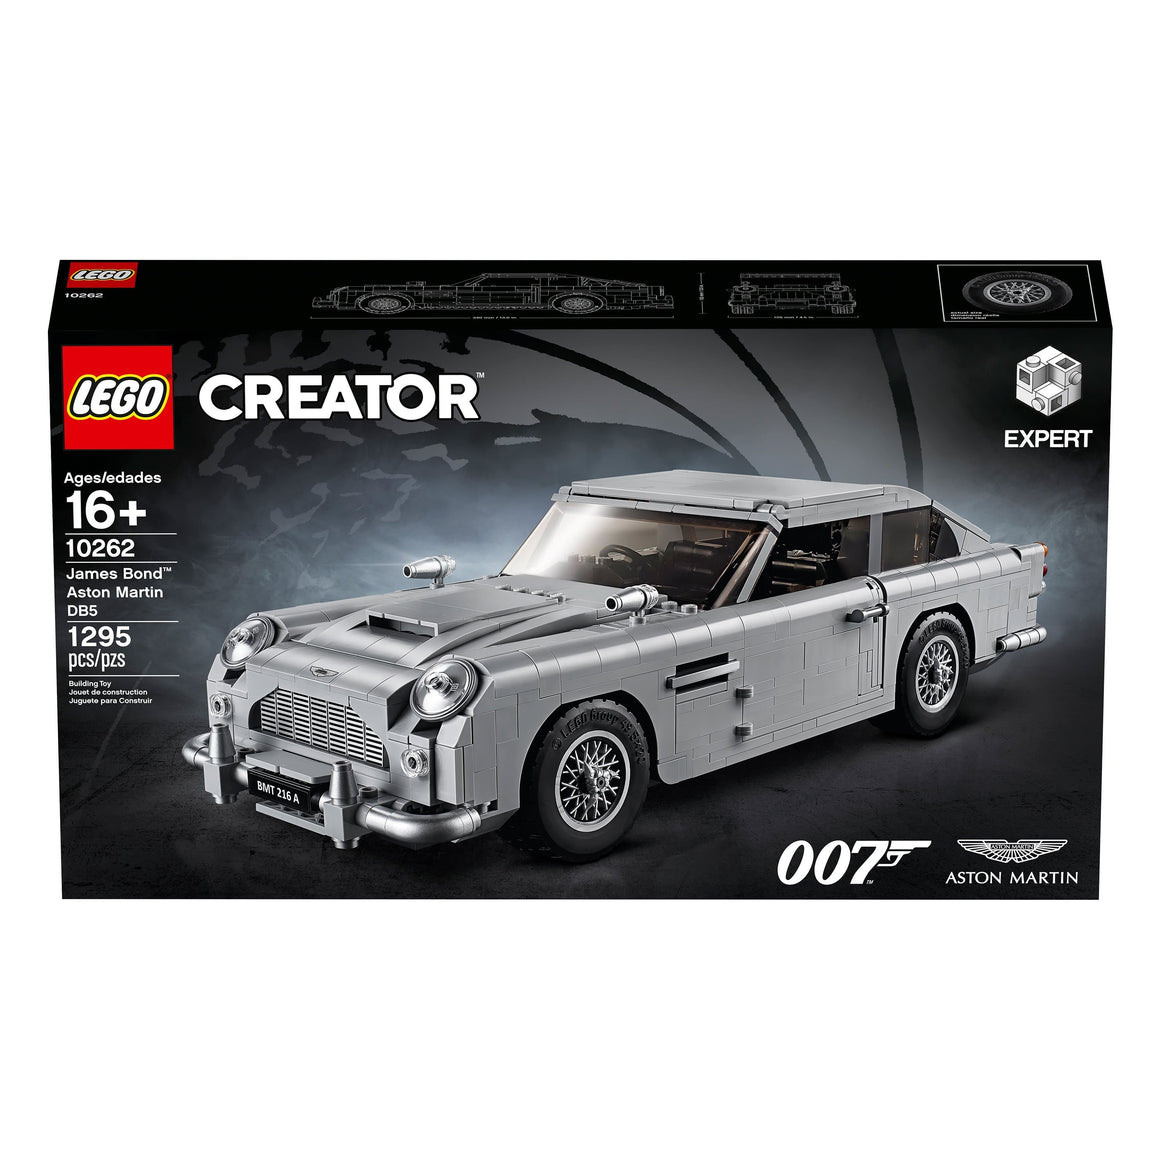 LEGO® CREATOR EXPERT JAMES BOND ASTON MARTIN DB5